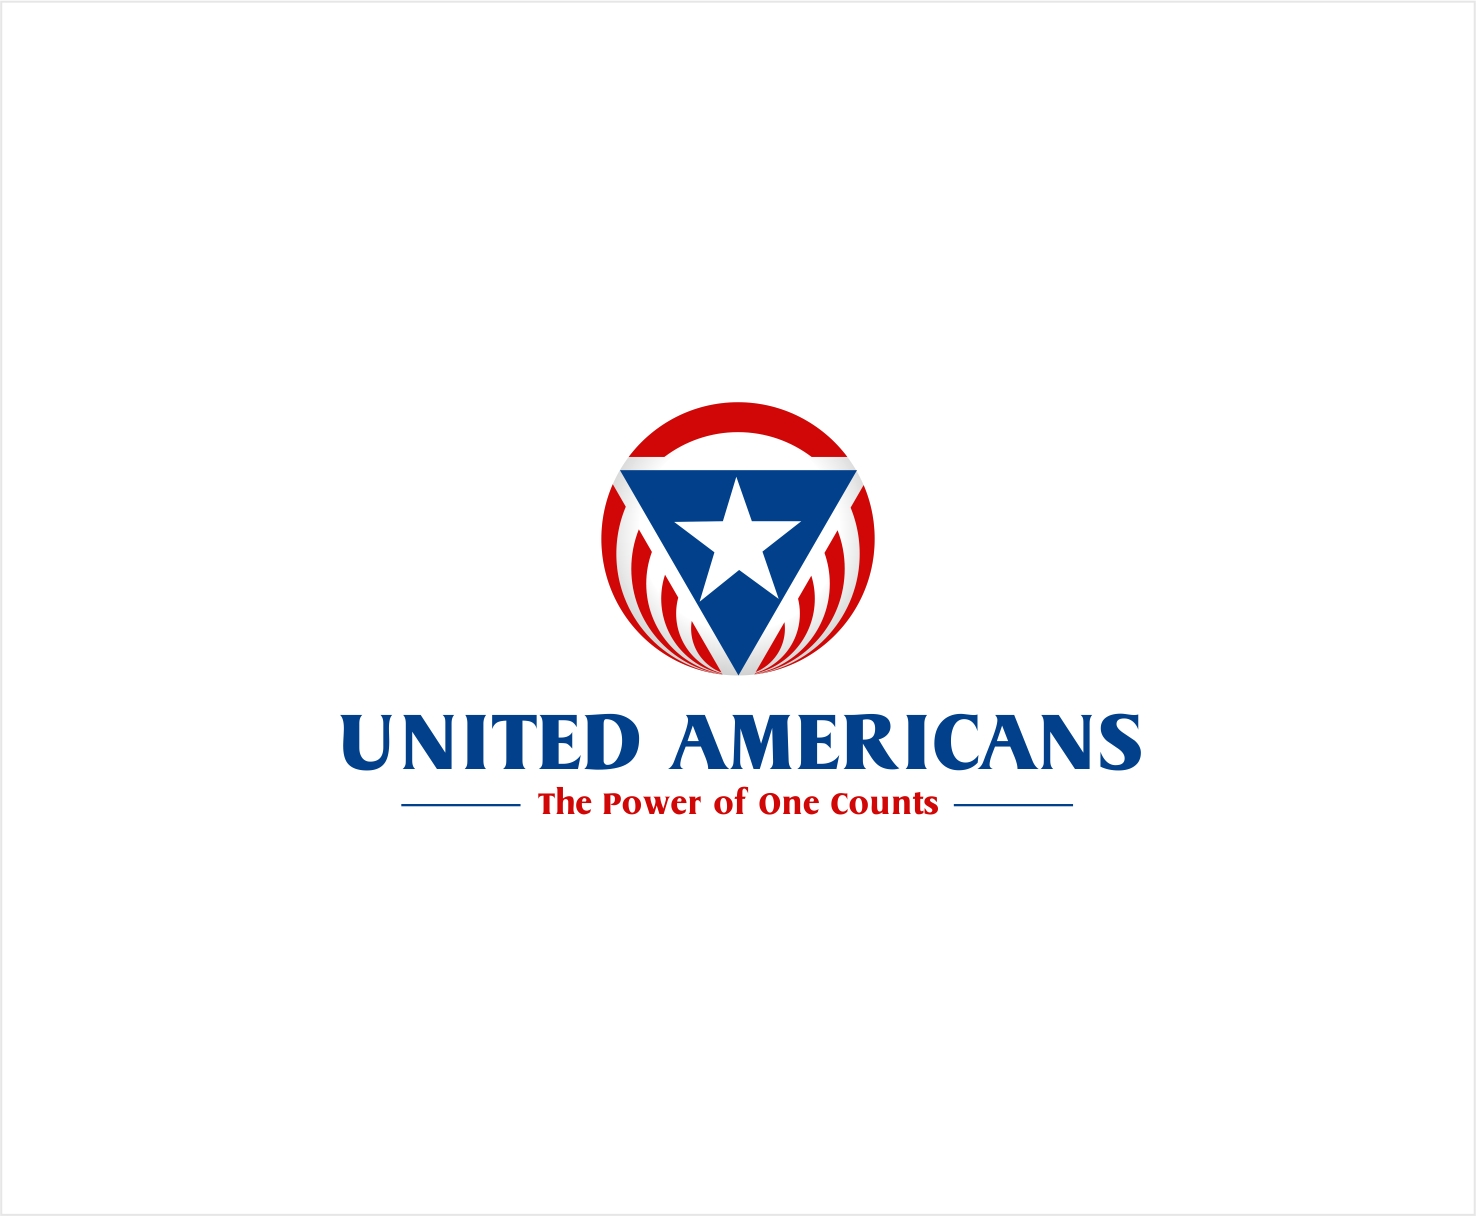 Logo Design by haidu - Entry No. 146 in the Logo Design Contest Creative Logo Design for United Americans.